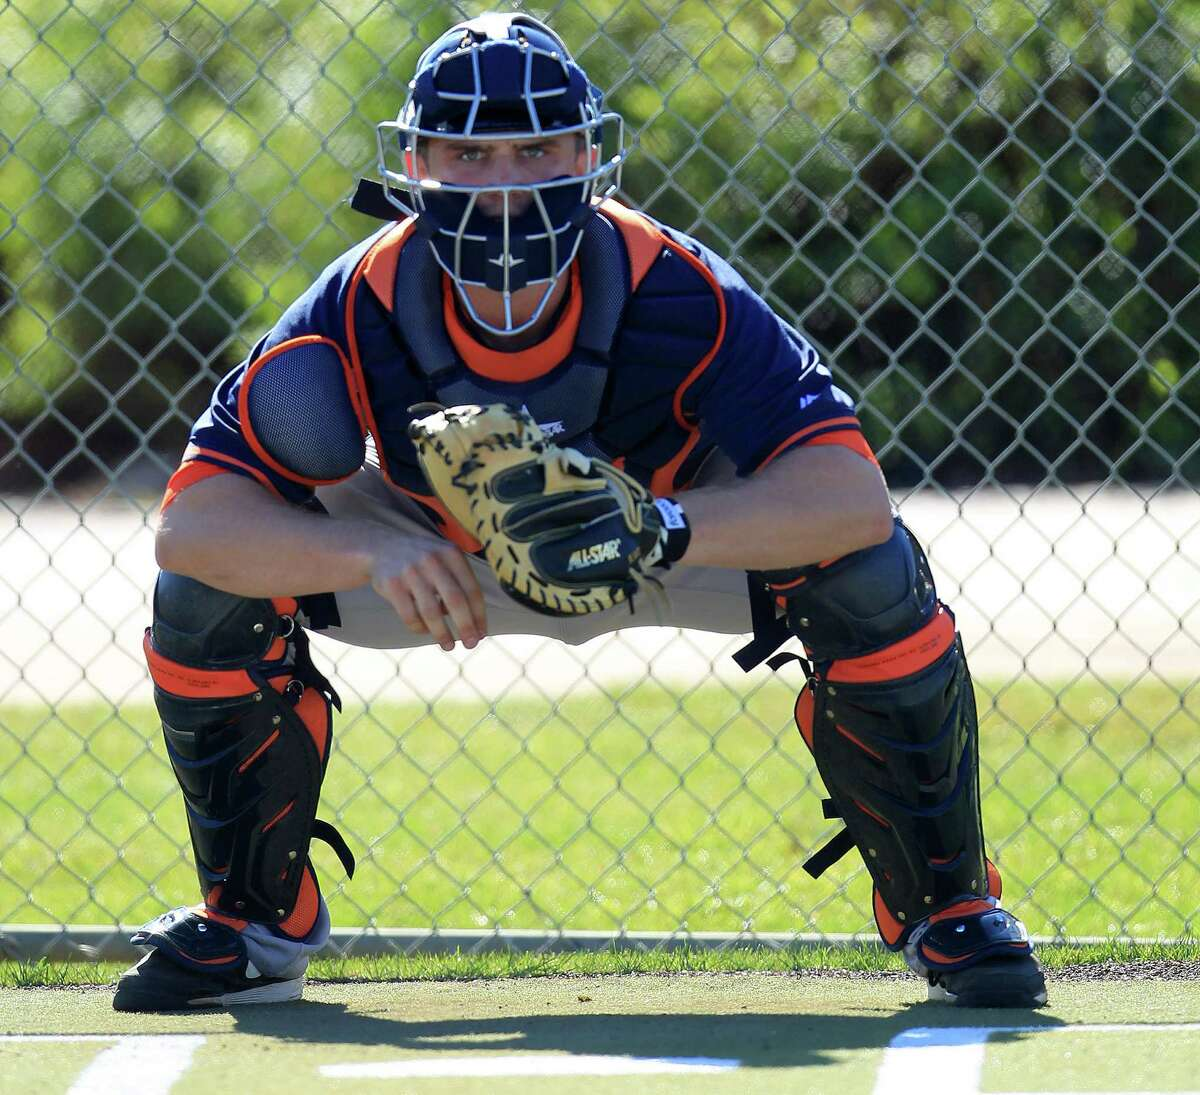 """Of Max Stassi, Astros manager A.J. Hinch says, """"We're going to ... make sure that his mechanics behind the plate are where they should be."""""""